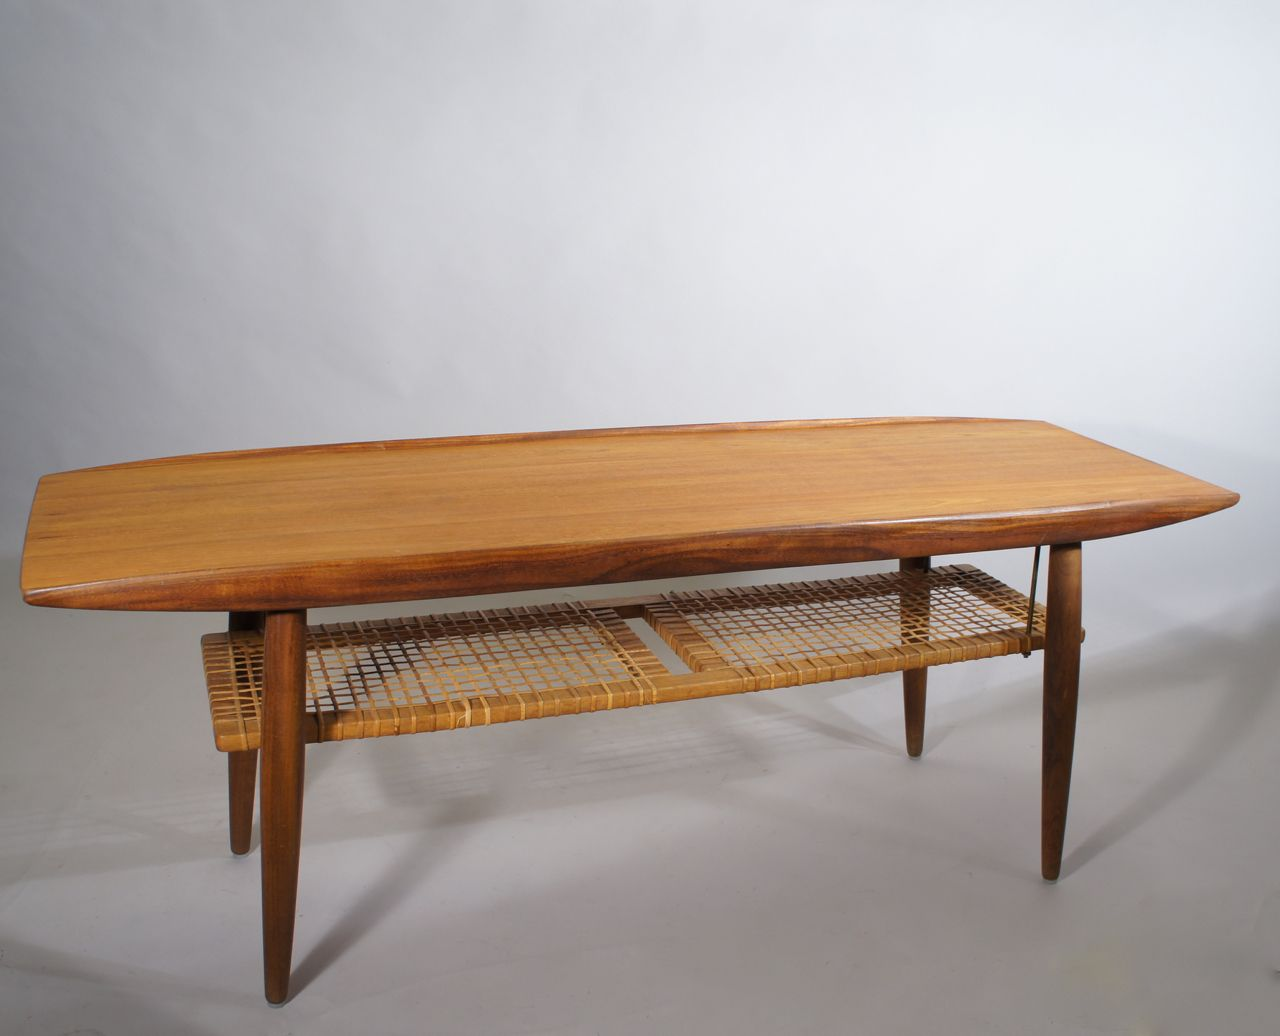 Mid century coffee table in teak and rattan for sale at pamono mid century coffee table in teak and rattan geotapseo Choice Image